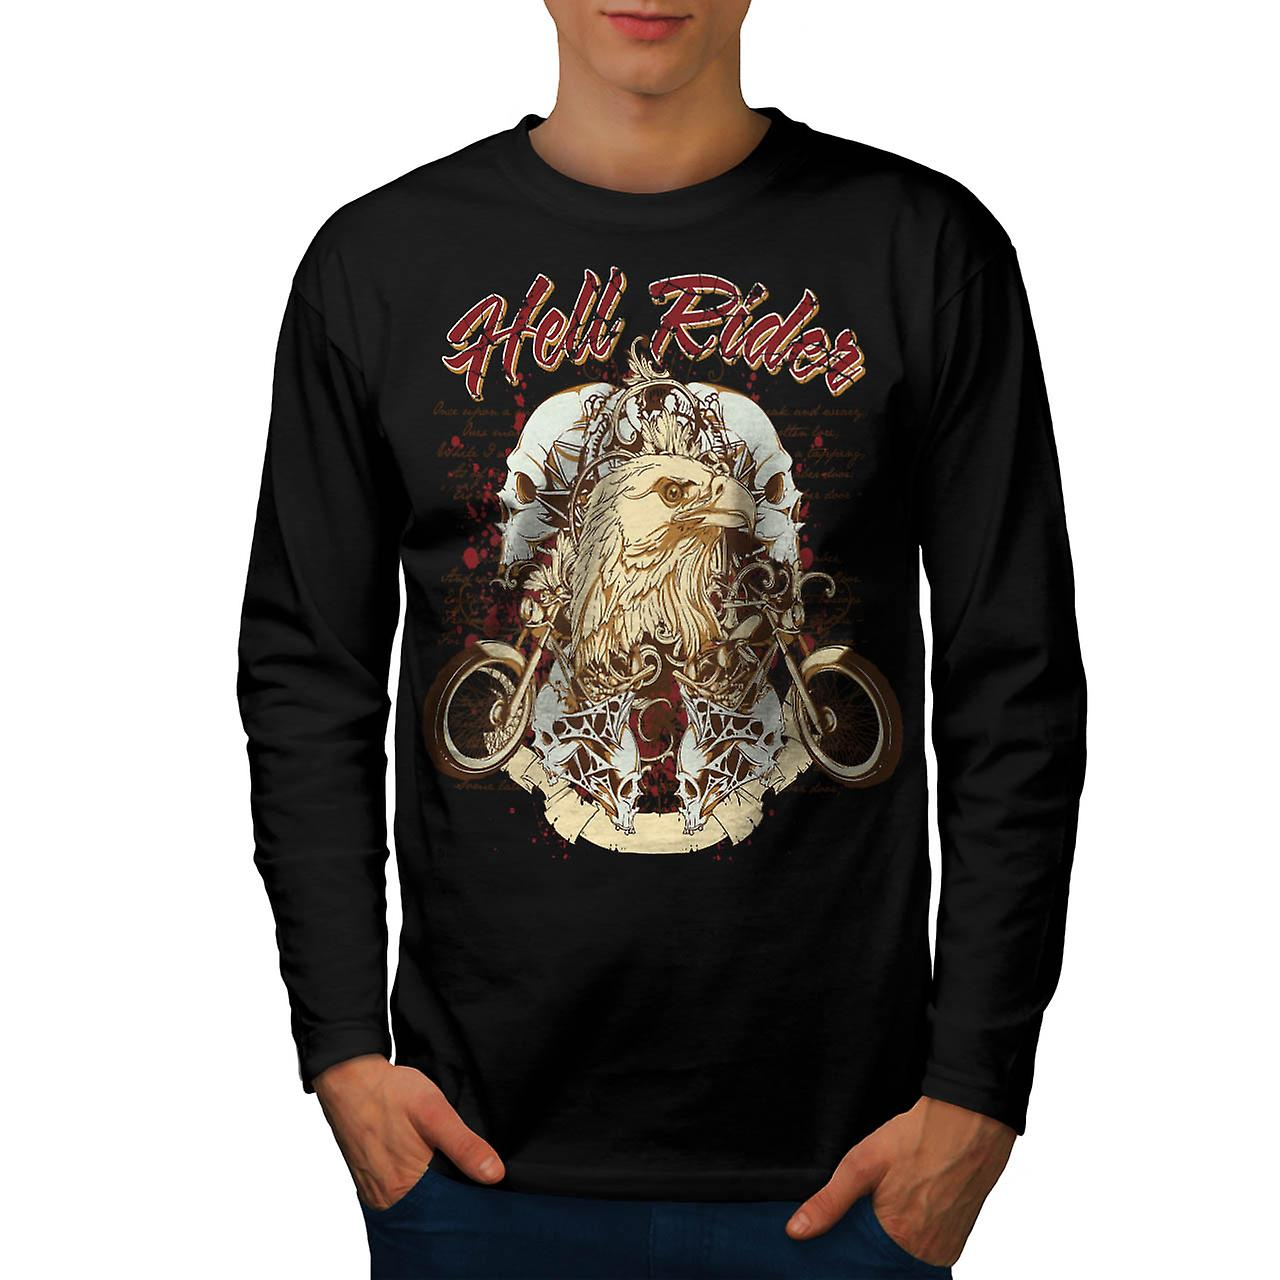 Hell Rider Biker Life Eagle Bike Men Black Long Sleeve T-shirt | Wellcoda